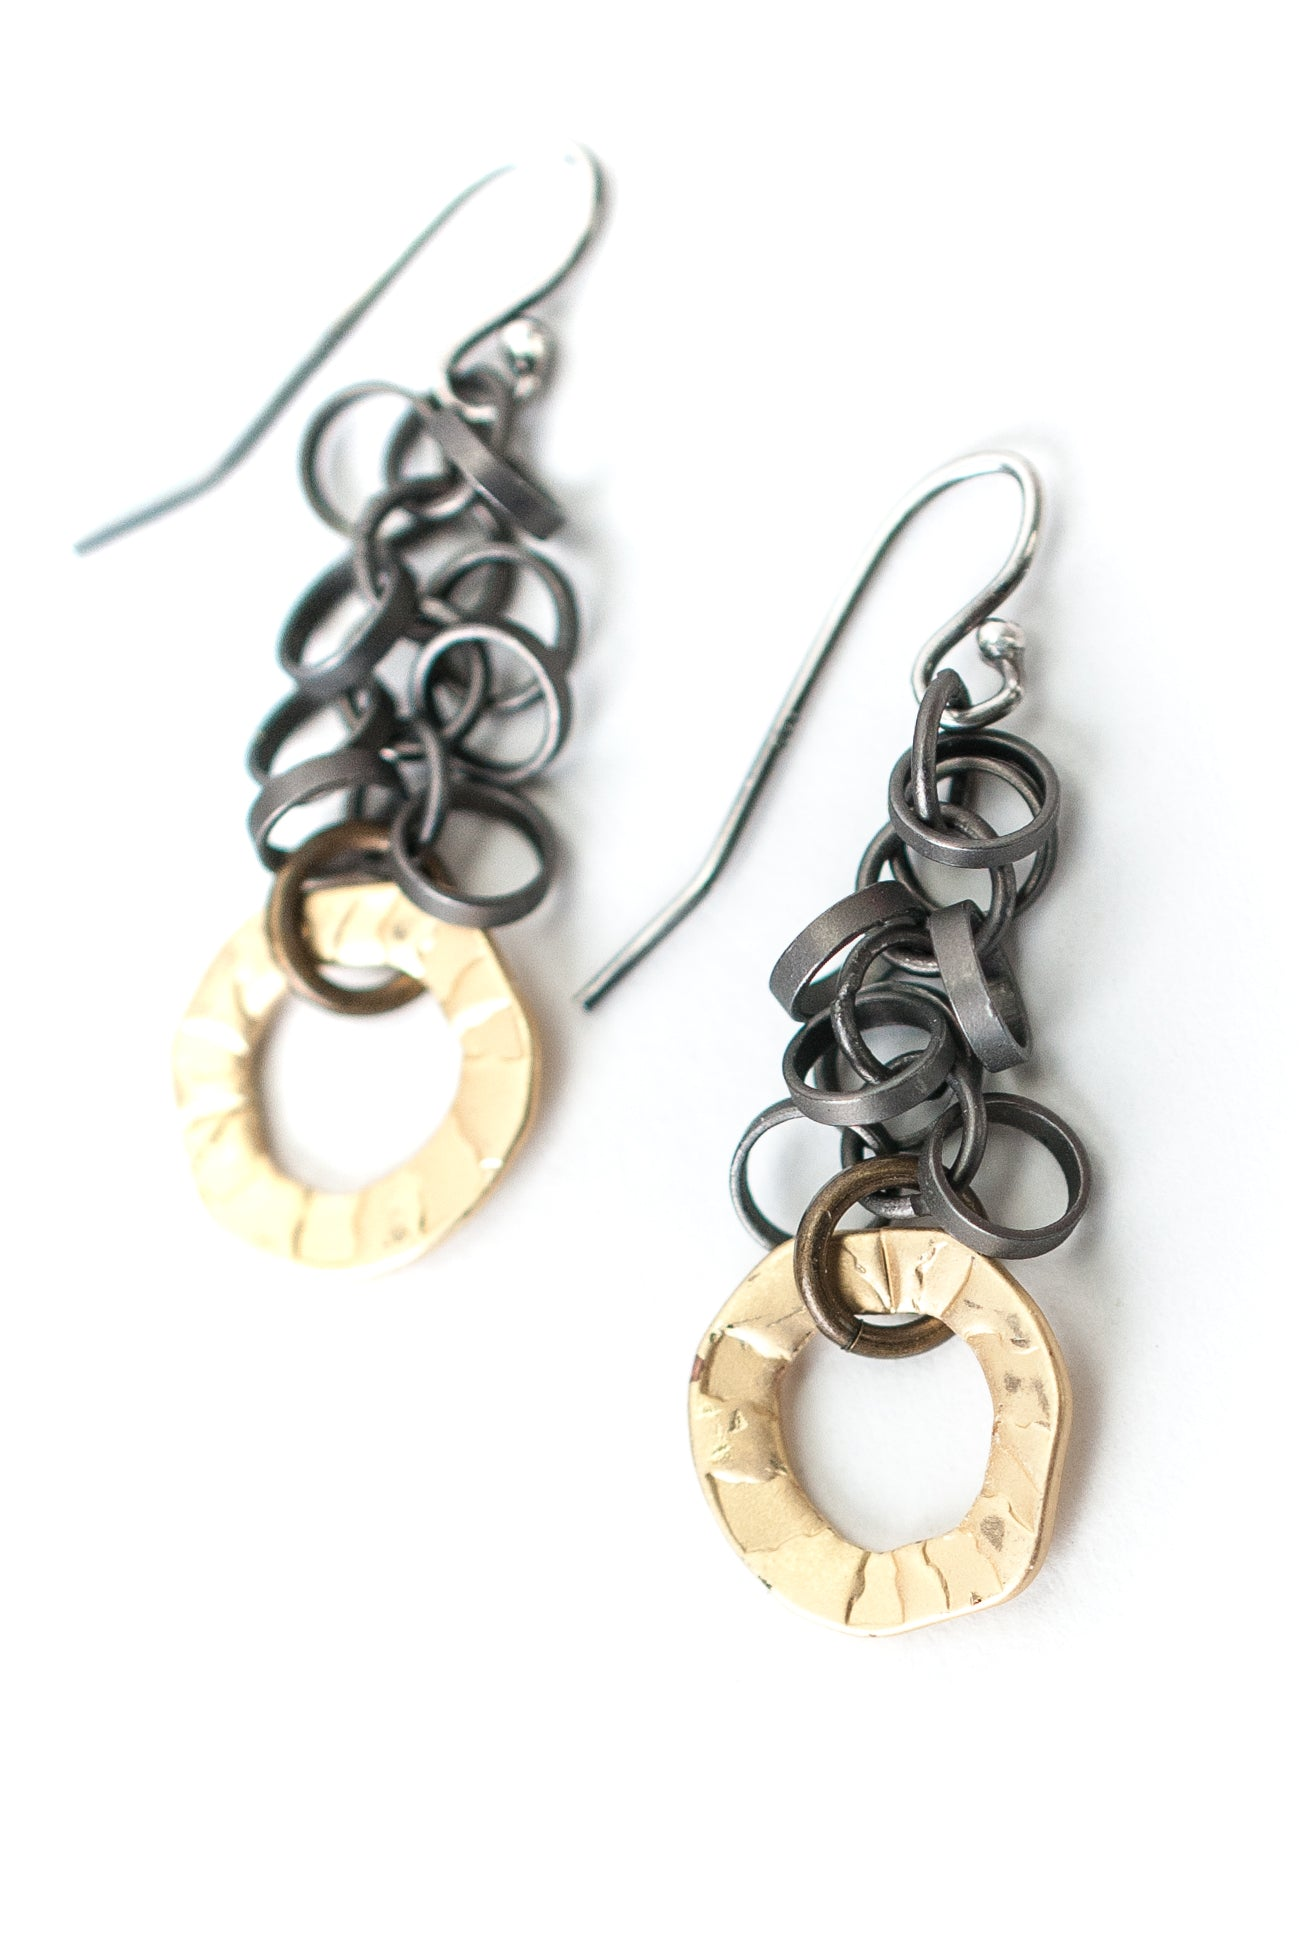 Silver & Gold Mixed Metal Earrings